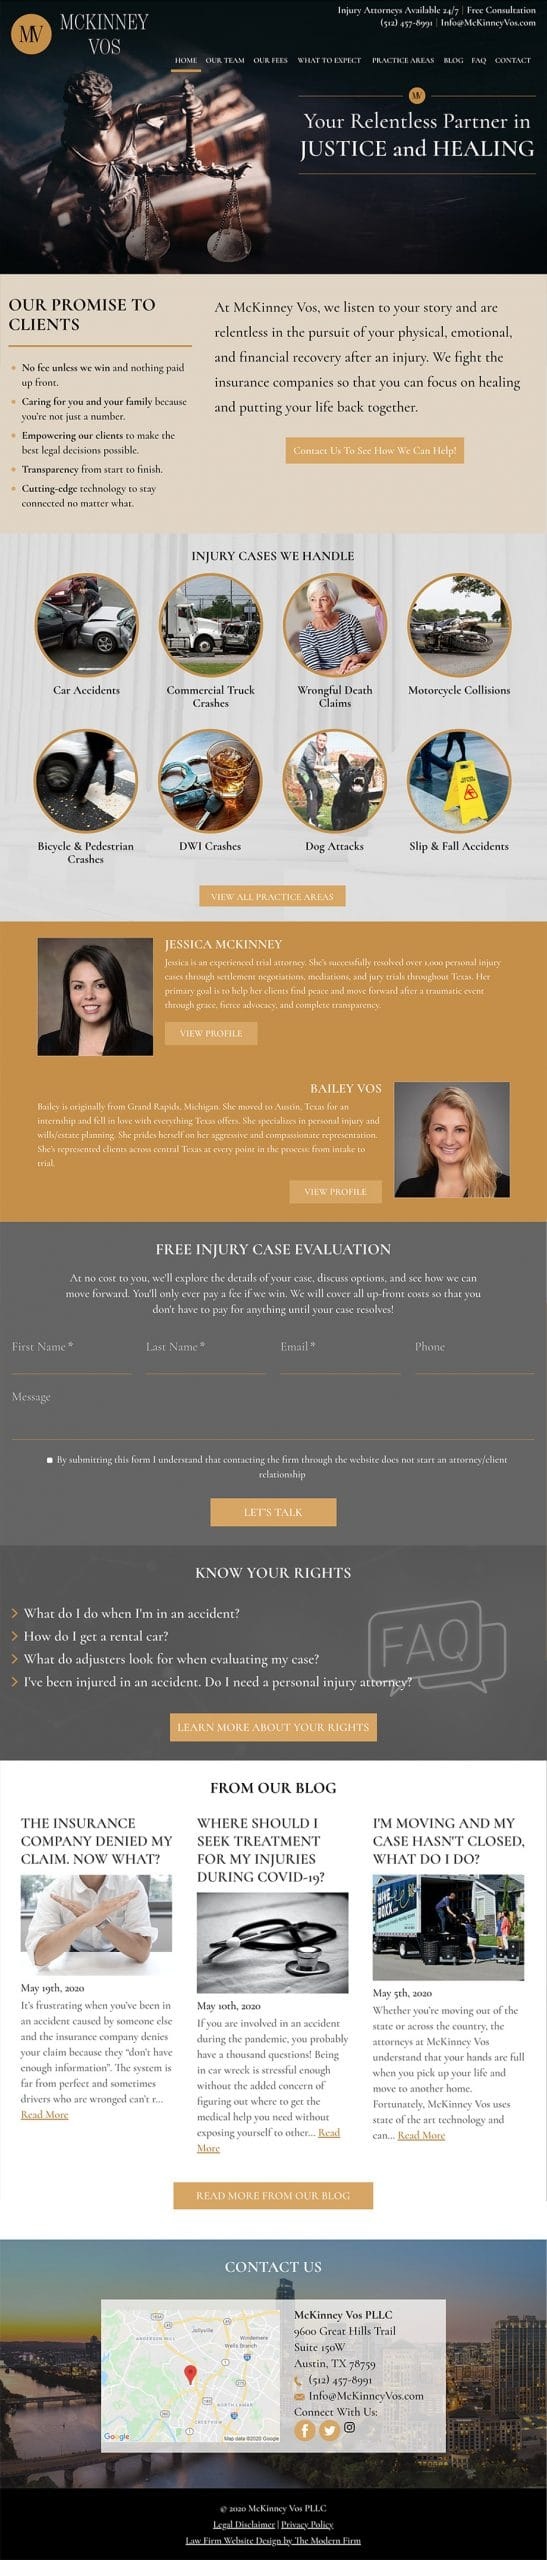 Law Firm Website for McKinney Vos PLLC